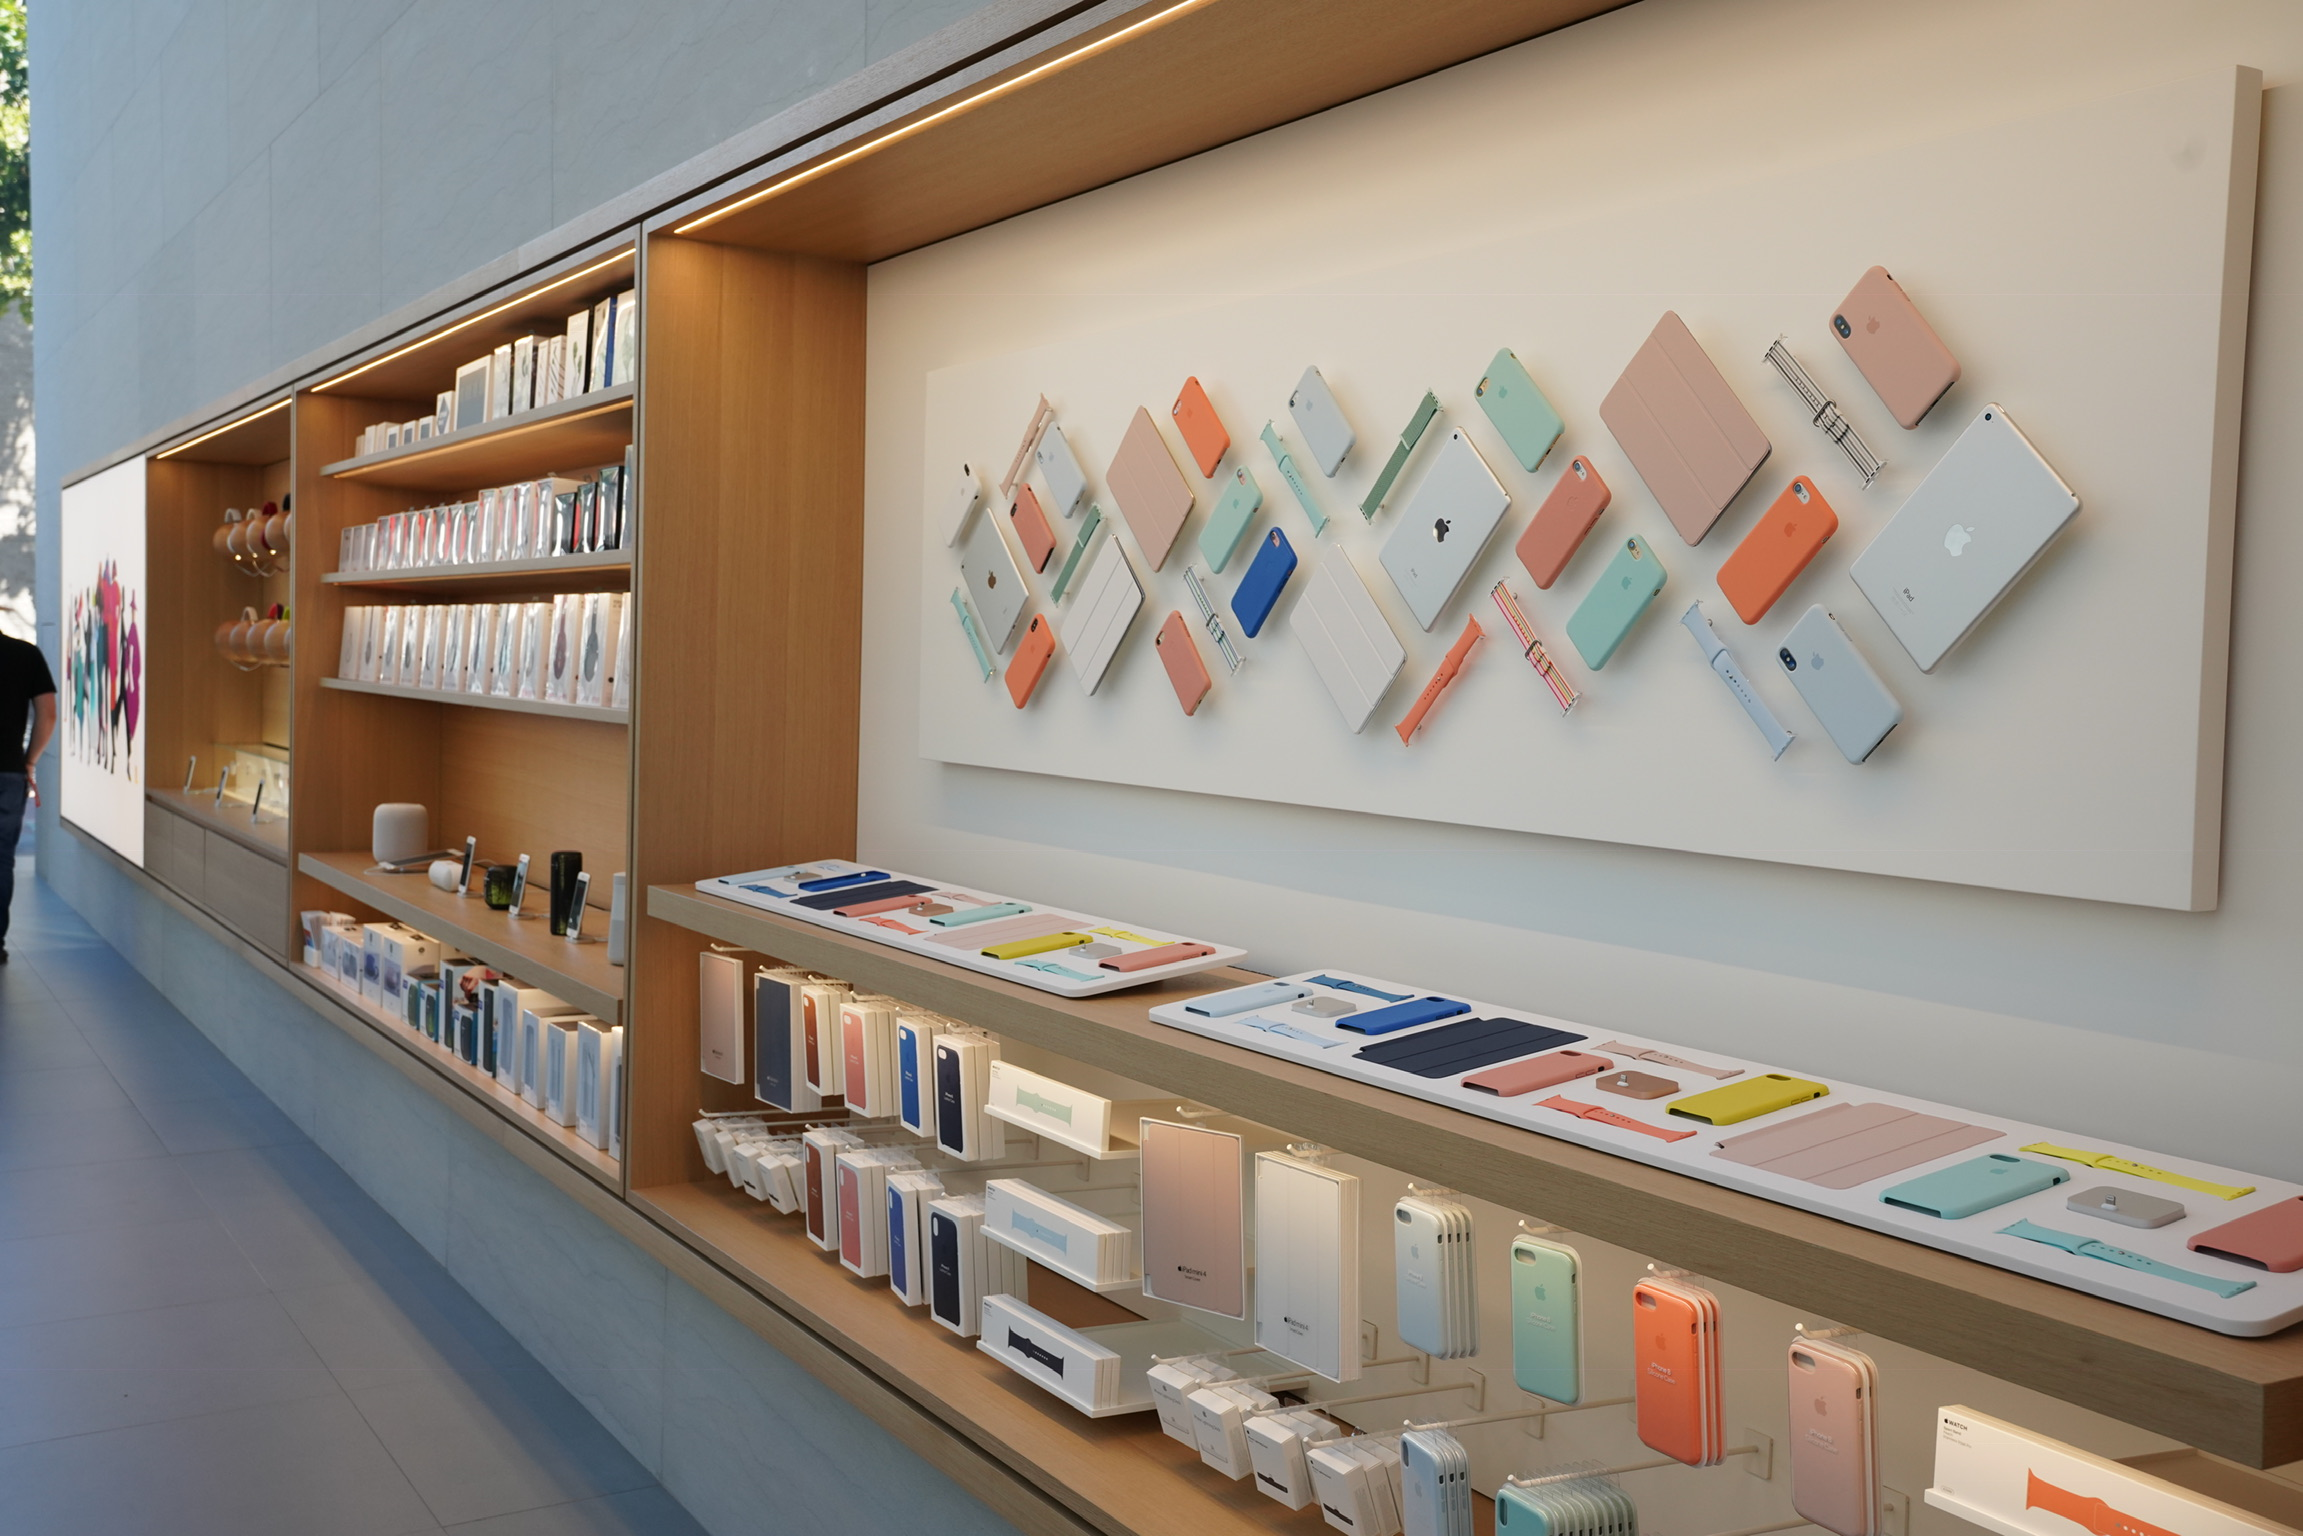 Gallery: Apple's renovated Palo Alto store blends latest